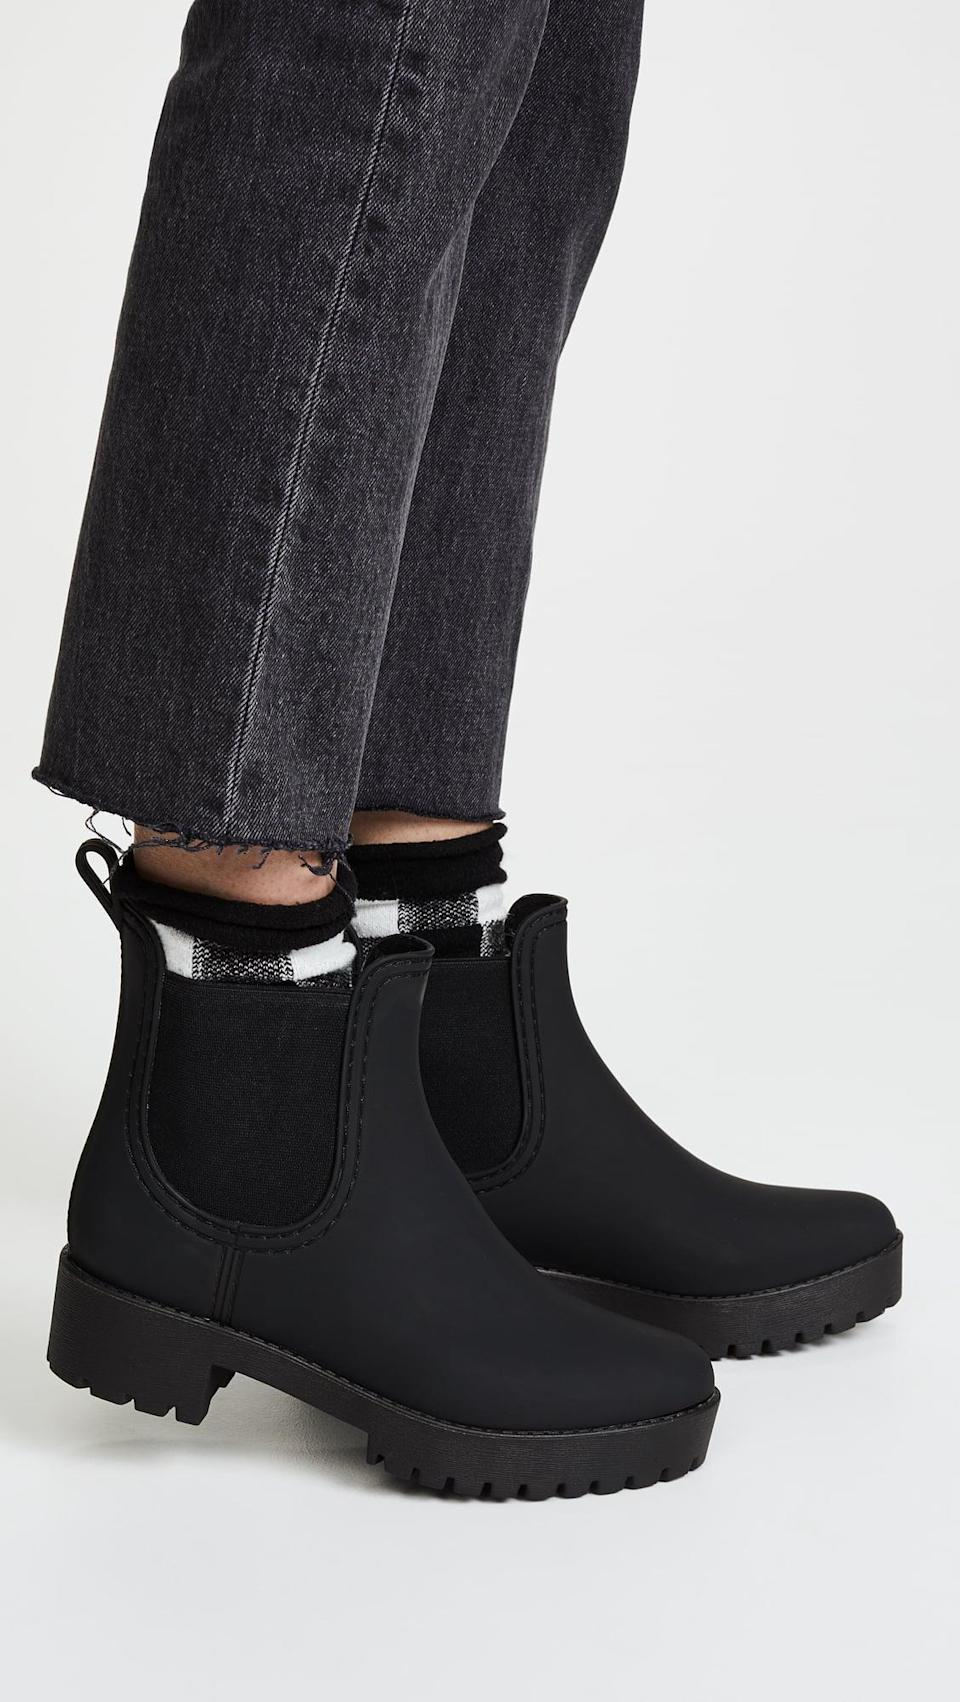 <p>Brave the weather in these cute <span>Jeffrey Campbell Cloudy Rain Booties</span> ($65).</p>